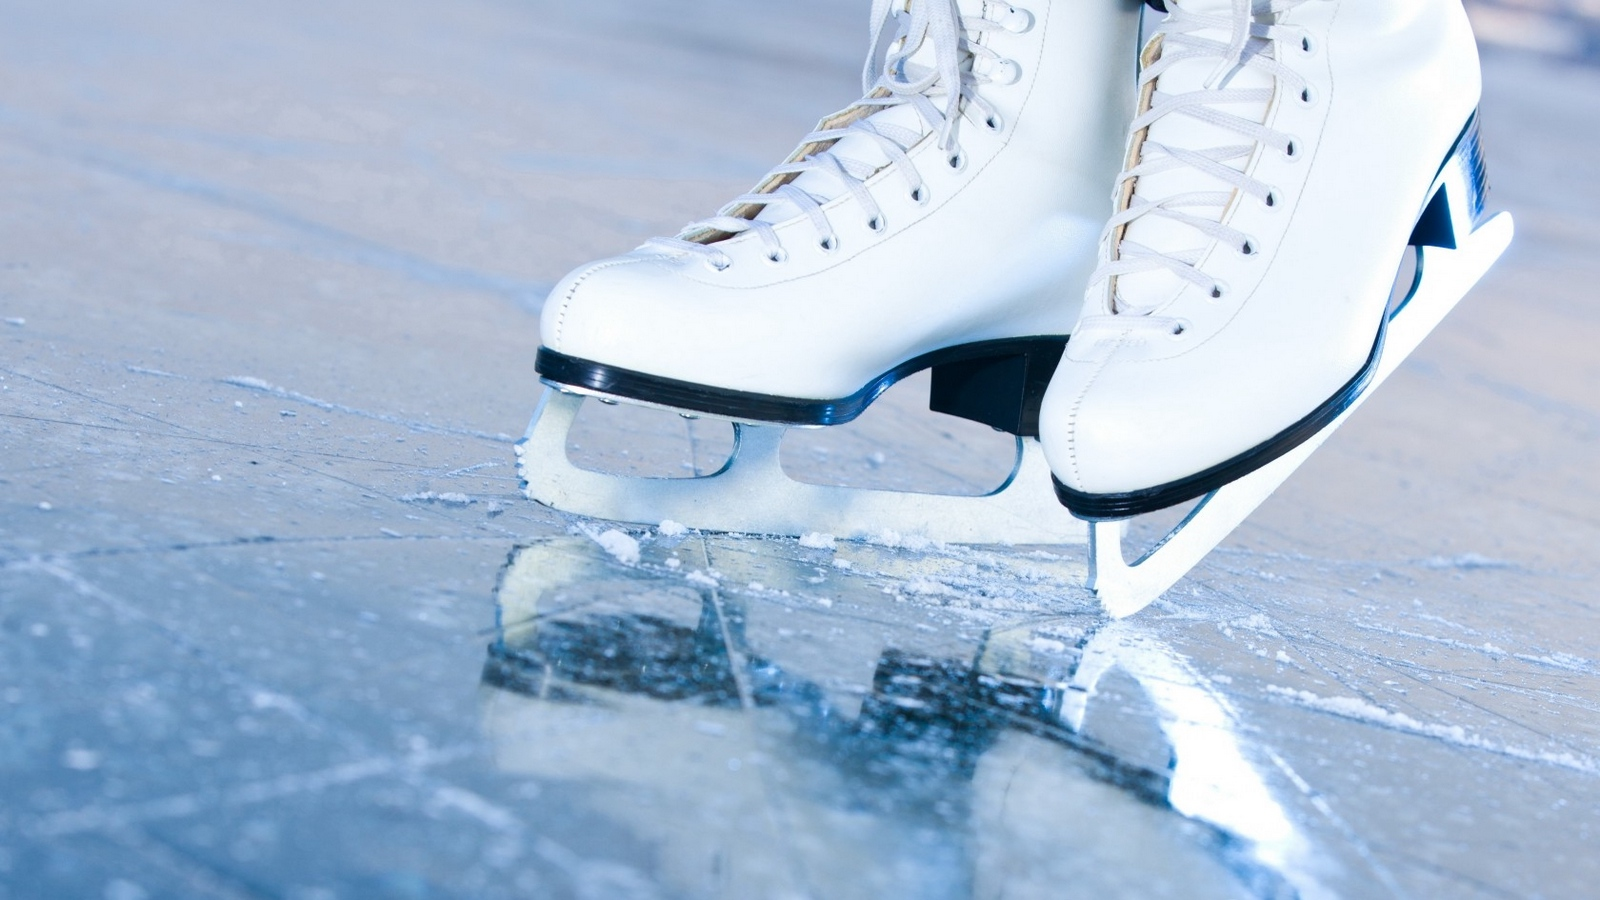 Ice rink clipart wallpaper clip art library ice skating wallpaper clip art library